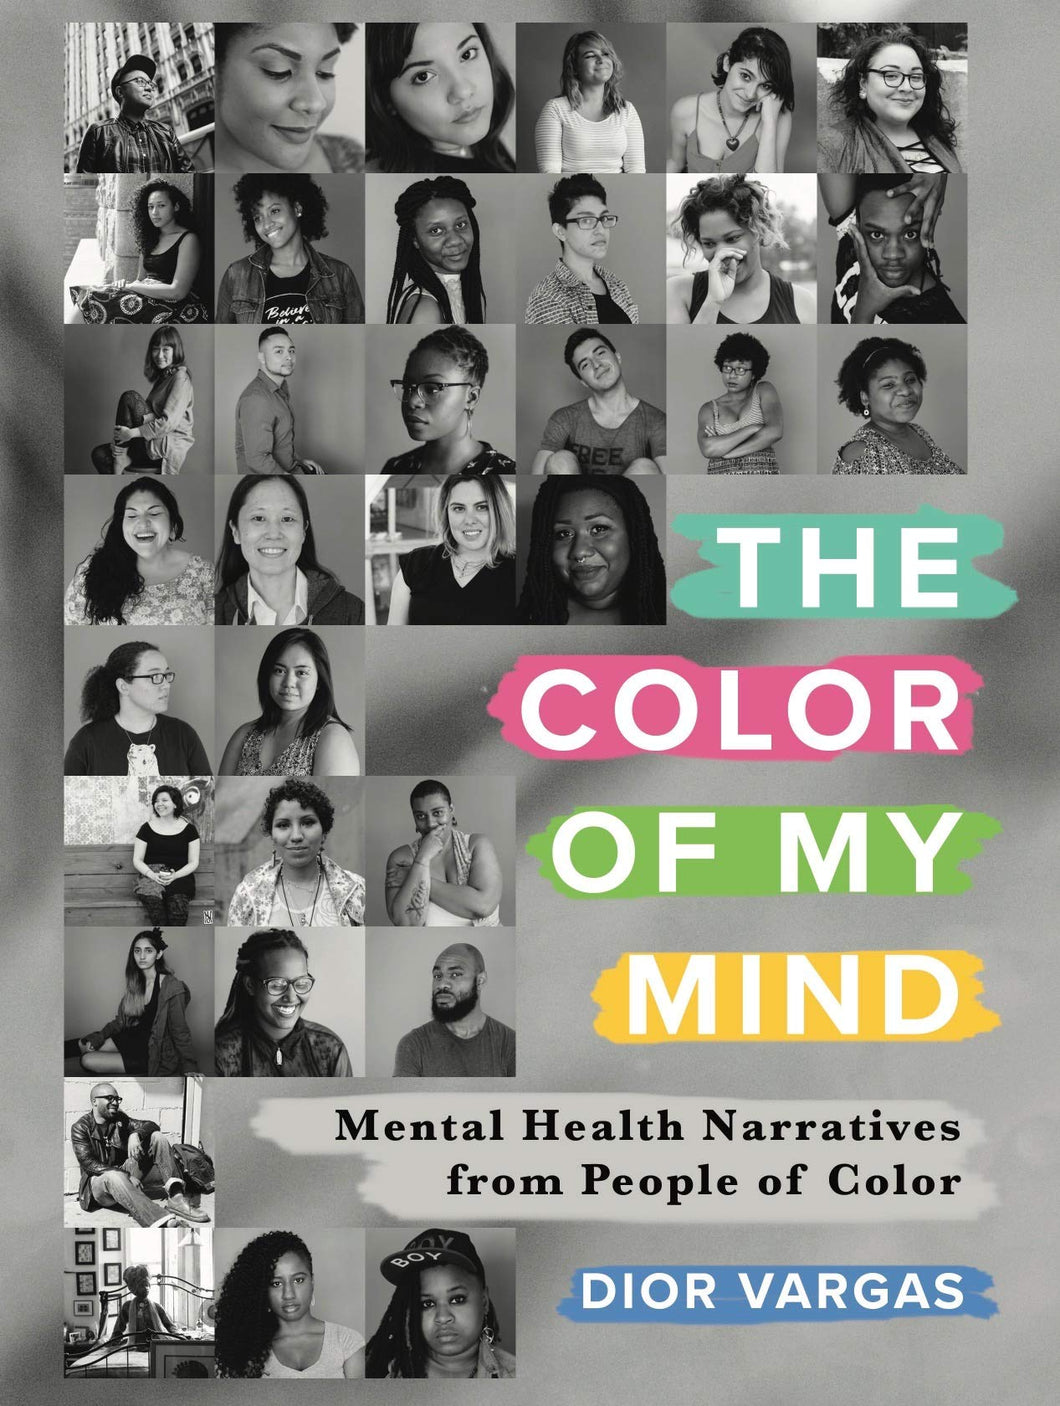 The Color of My Mind: Mental Health Narratives from People of Color